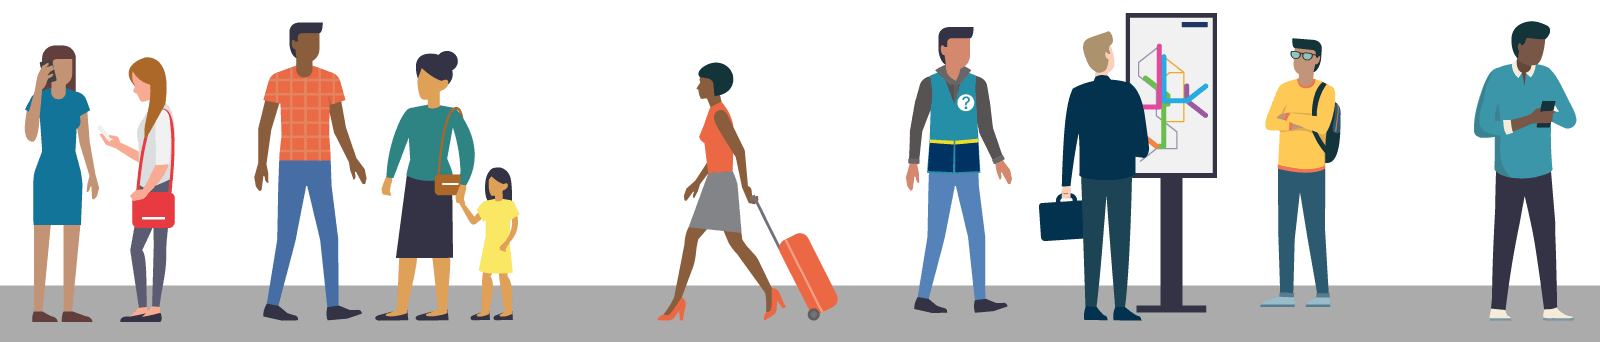 Illustration of people at a light rail station